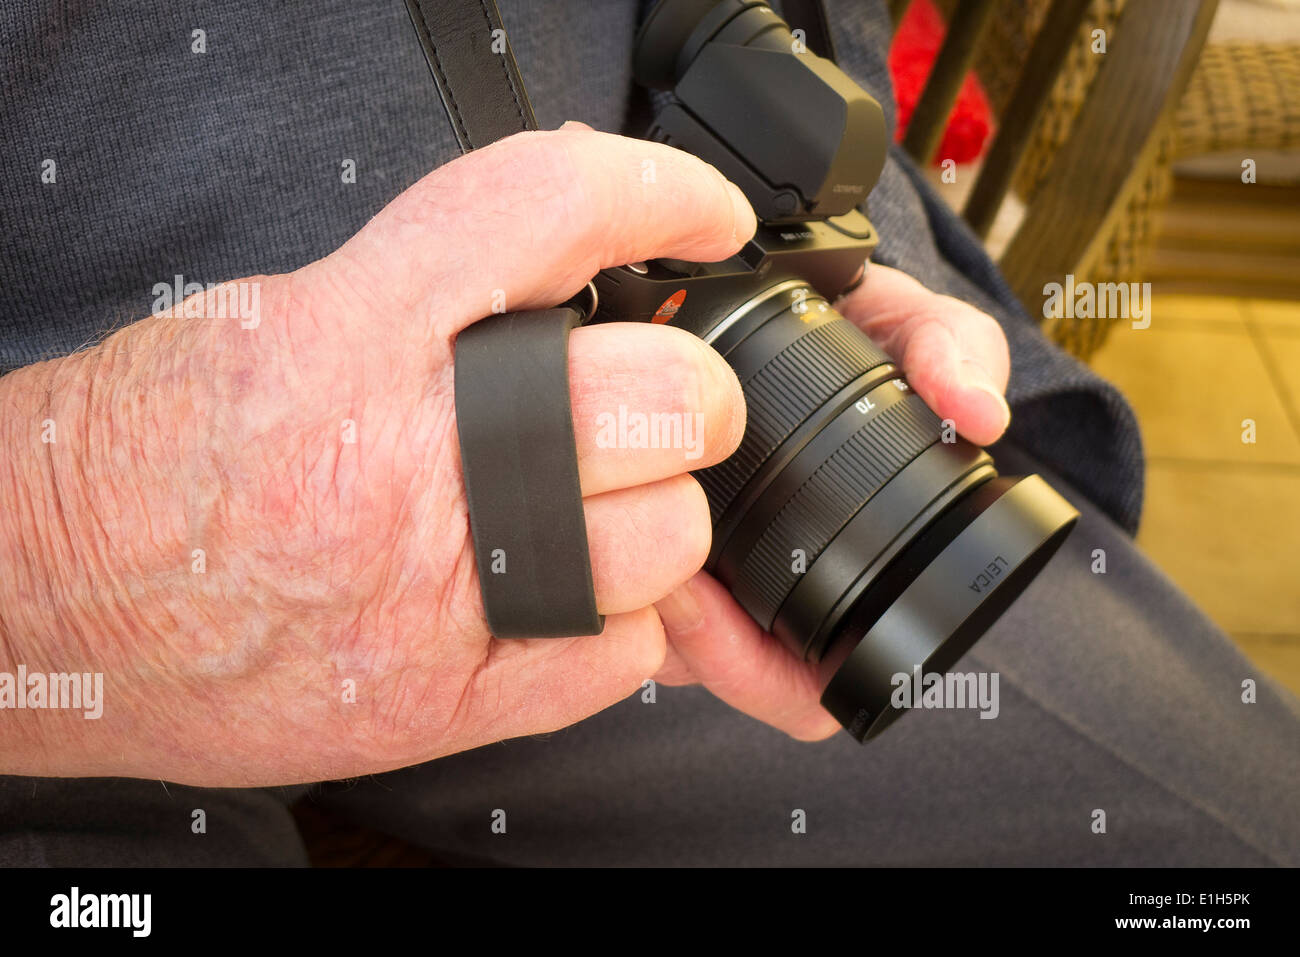 Demonstration of use of Leica Finger Loop attached to camera hand-grip for added security - Stock Image